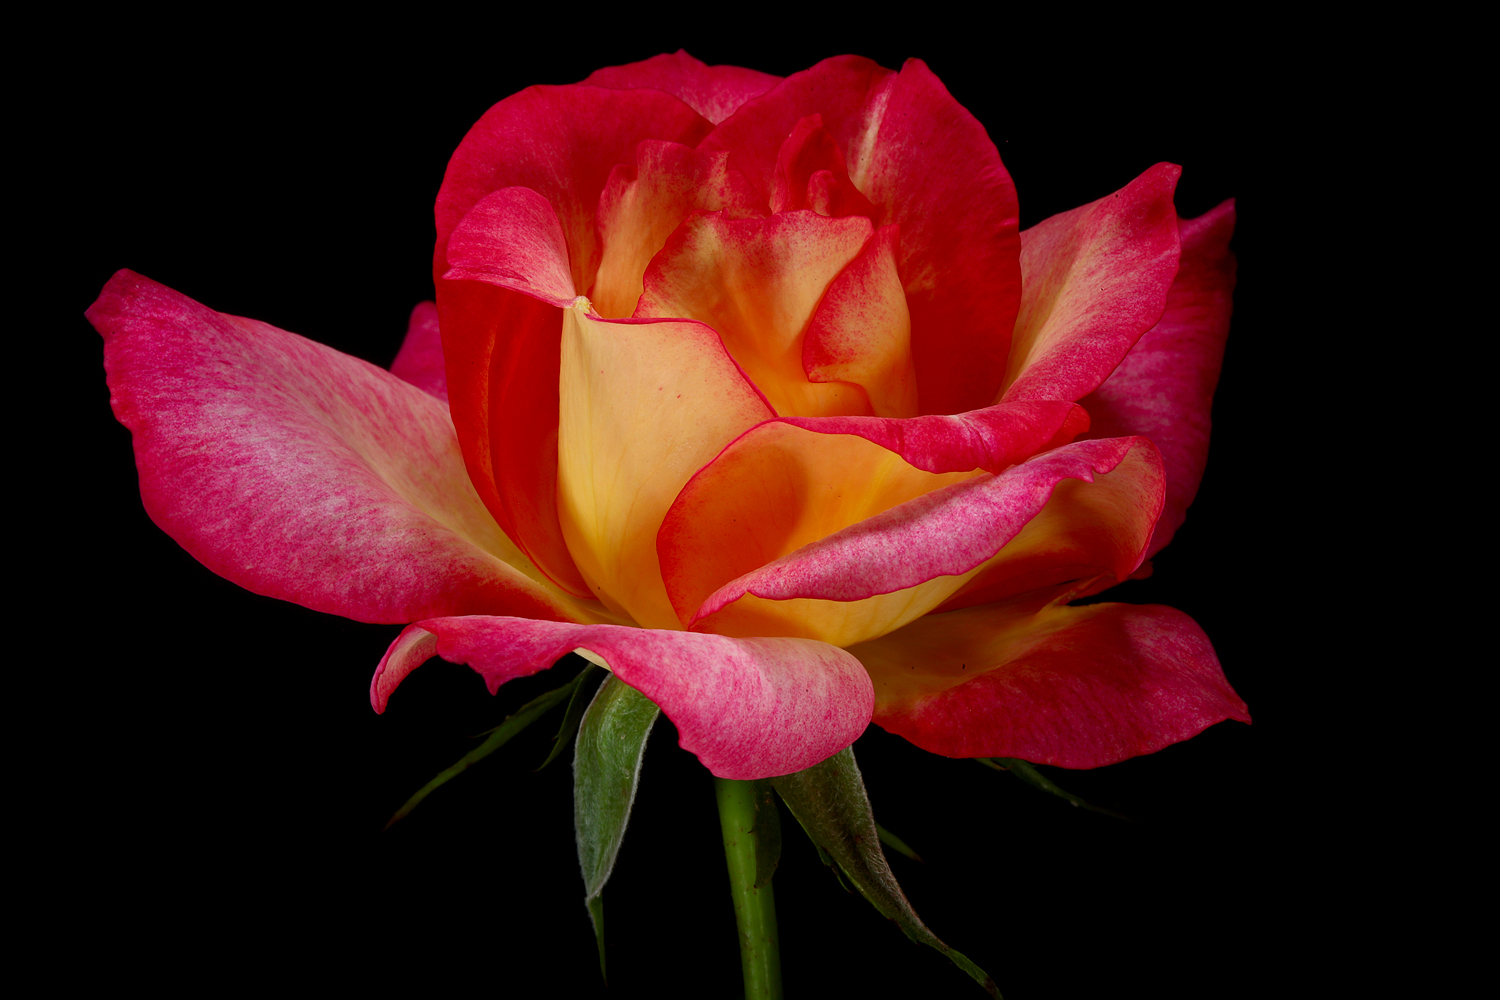 last rose of summer tilt img aw author sava gre gregory and verena